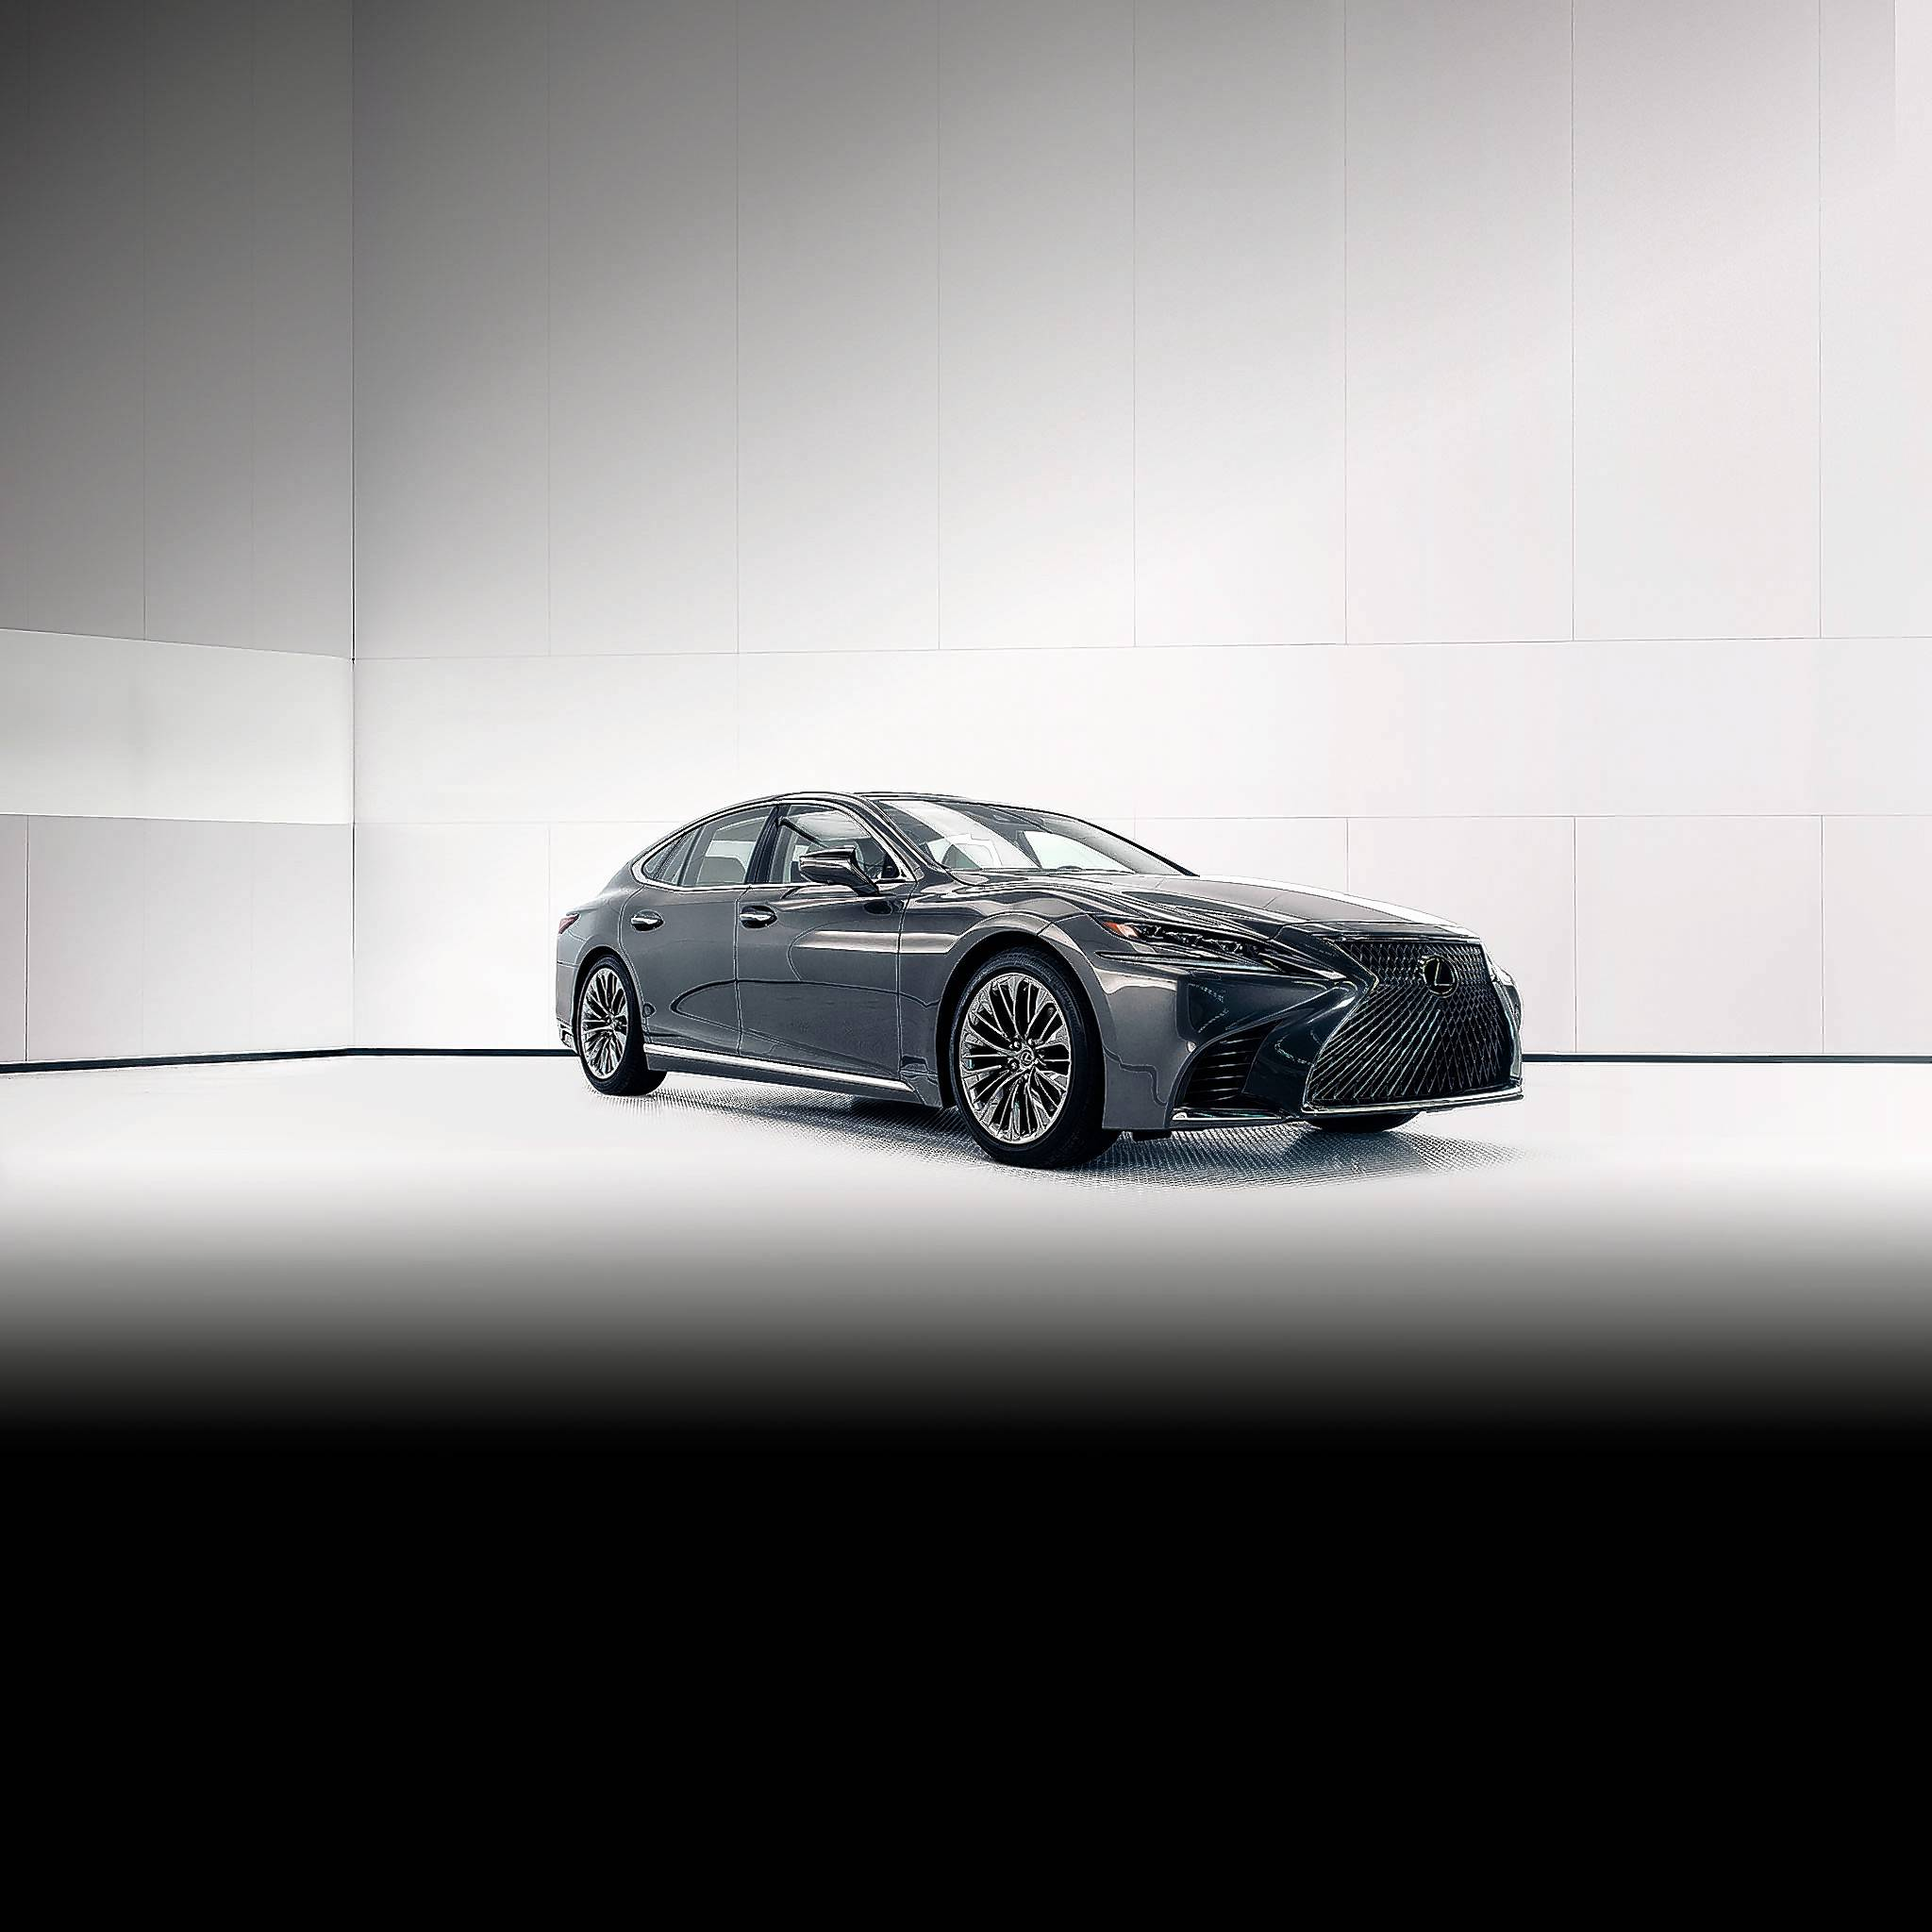 The new Lexus LS will debut at the Chicago Auto Show starting Saturday. It contains new automated safety features.